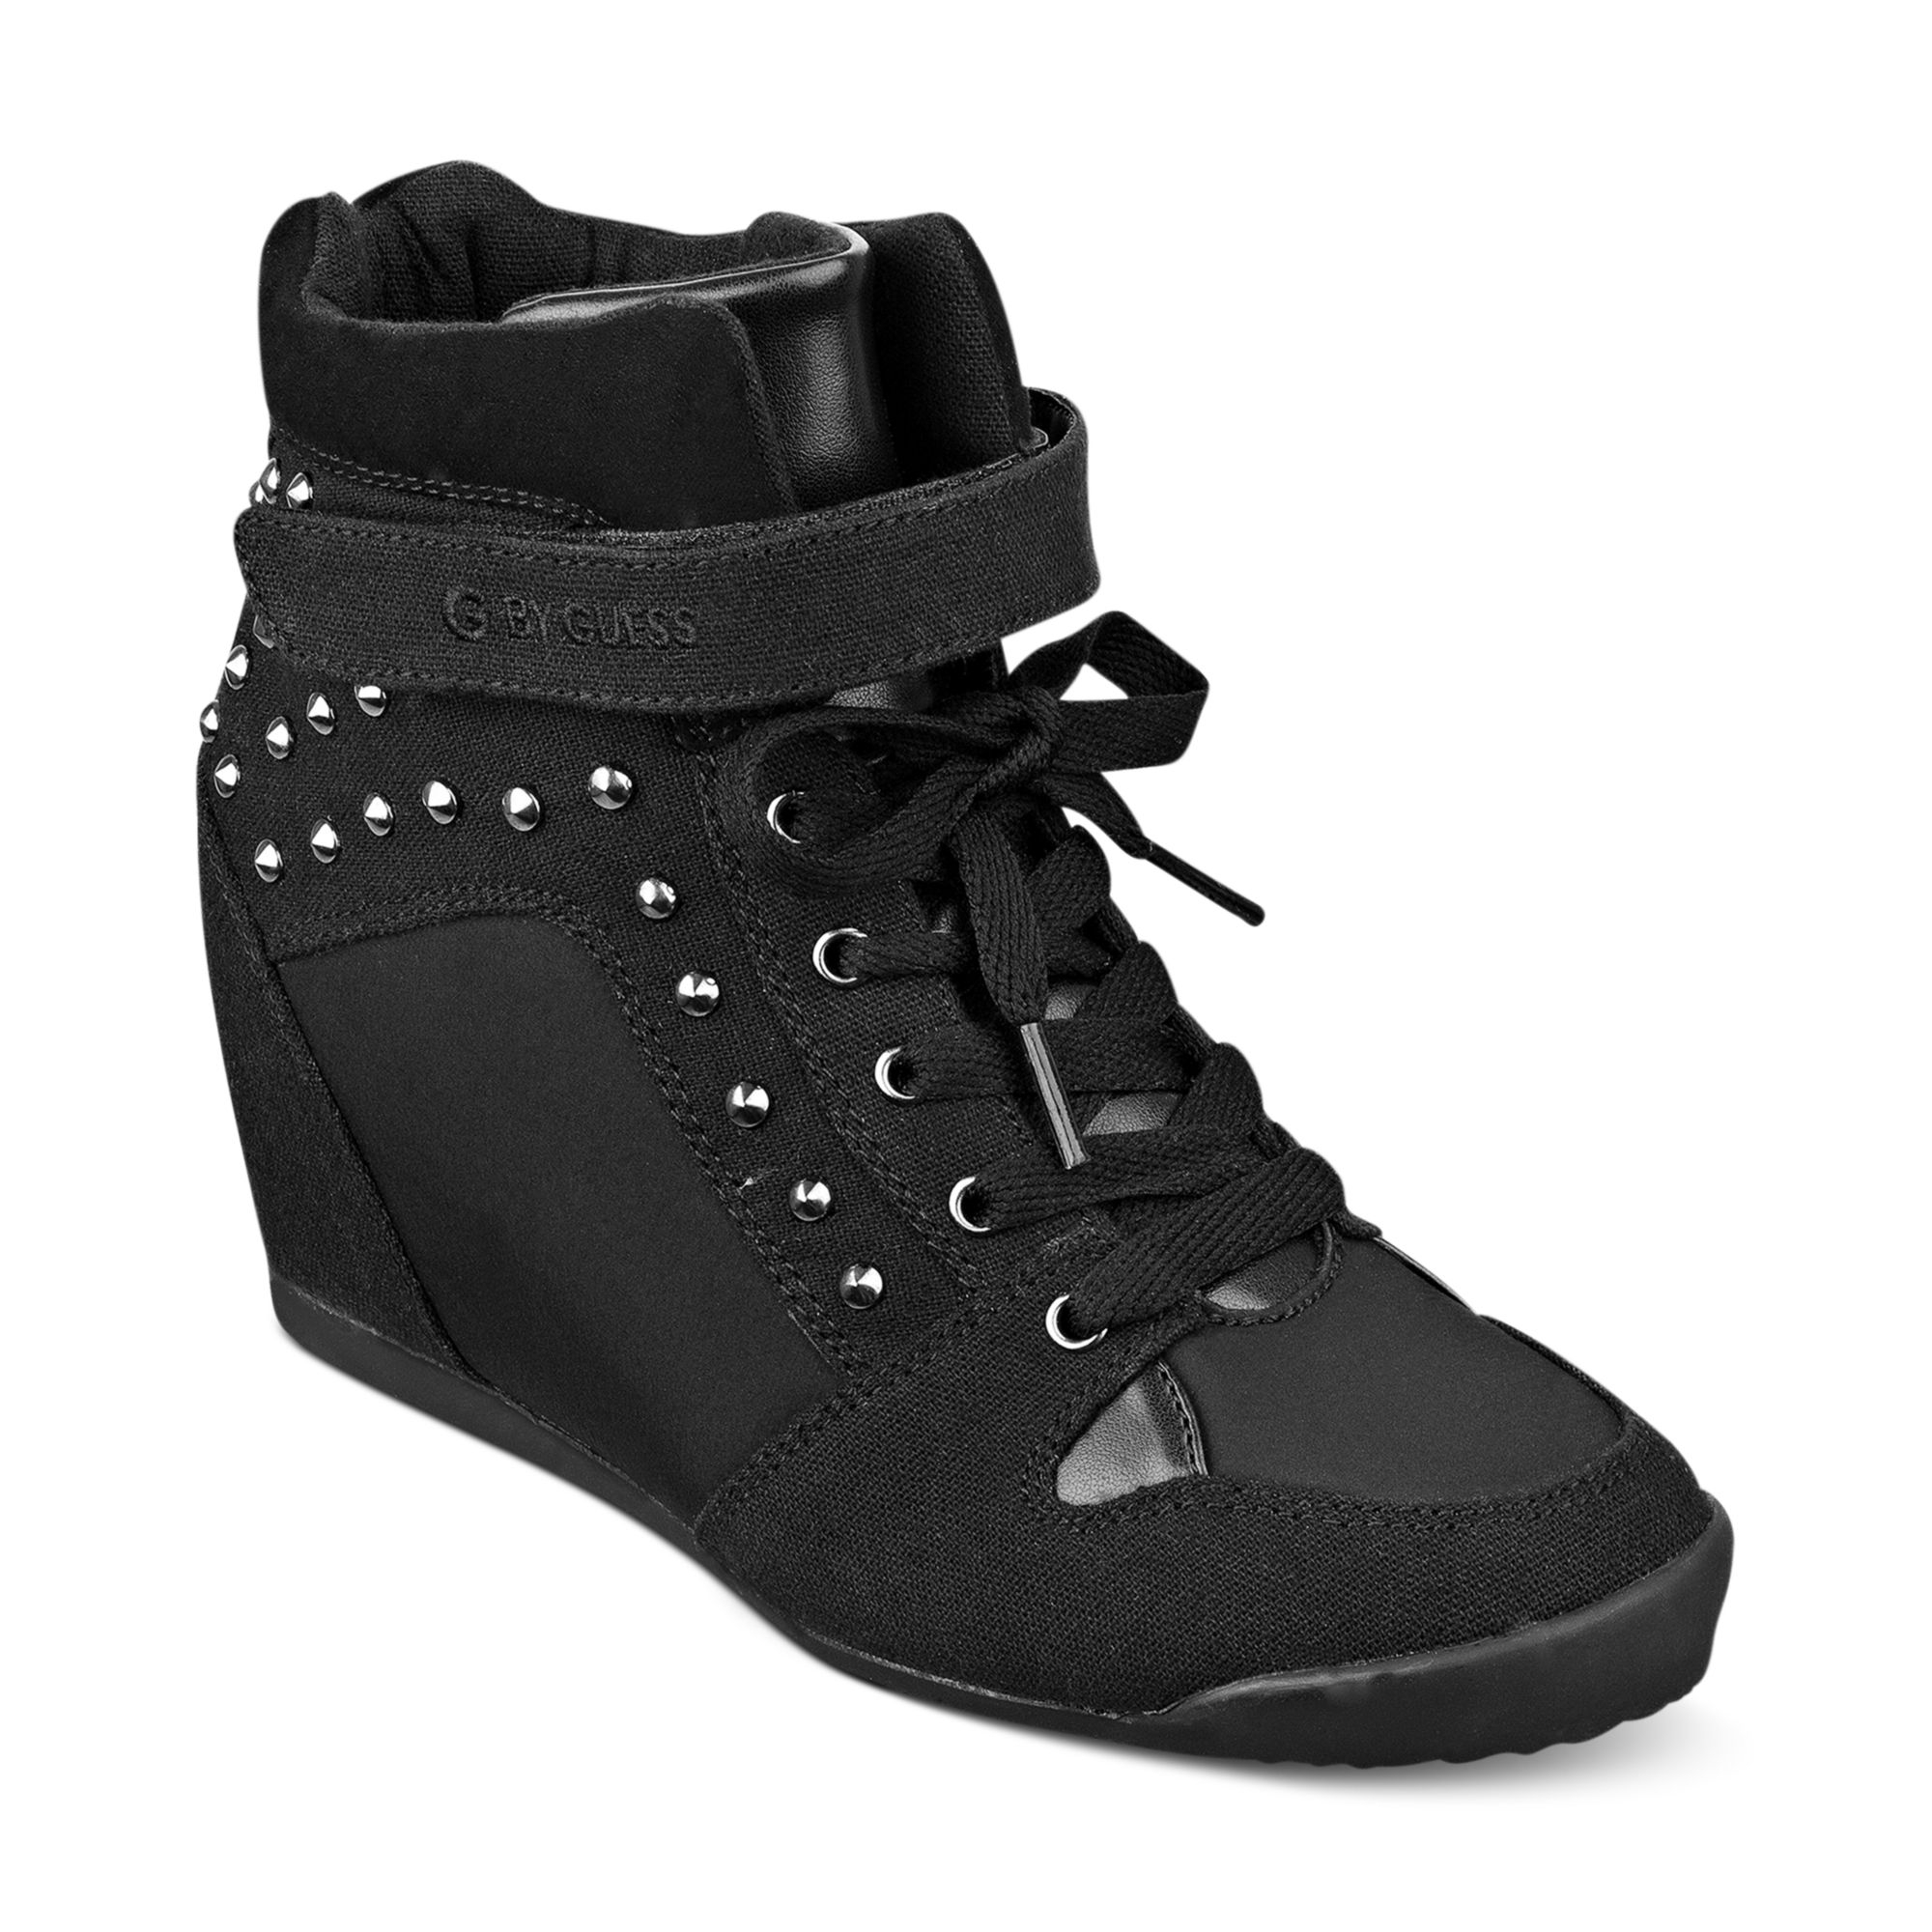 933823e687f Glitter In Raurie Shoes By Lyst Wedge G Sneakers Guess BnXw4xFZSq